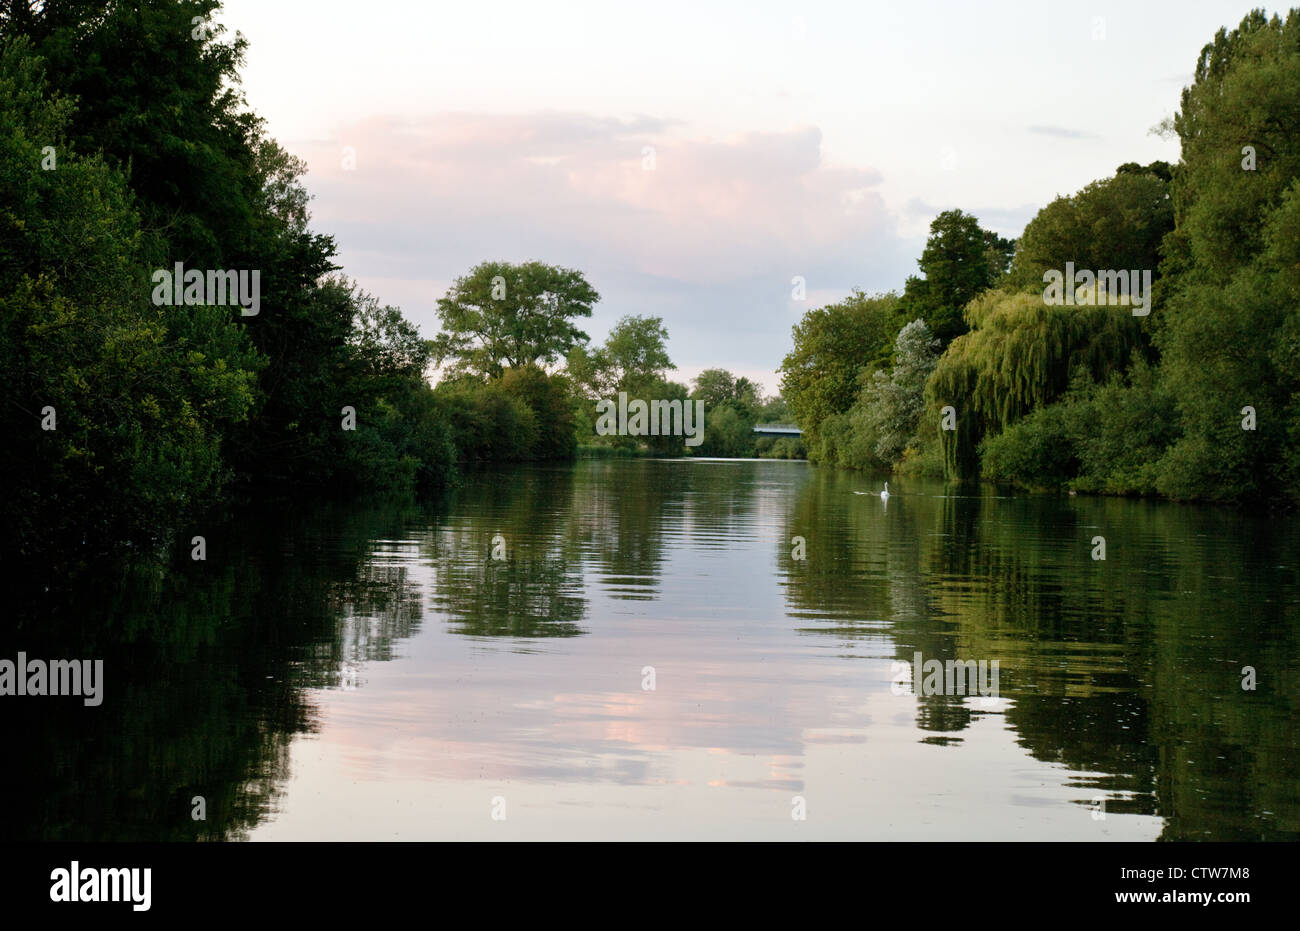 A peaceful evening on the River Thames at Wallingford, Oxfordshire UK - Stock Image